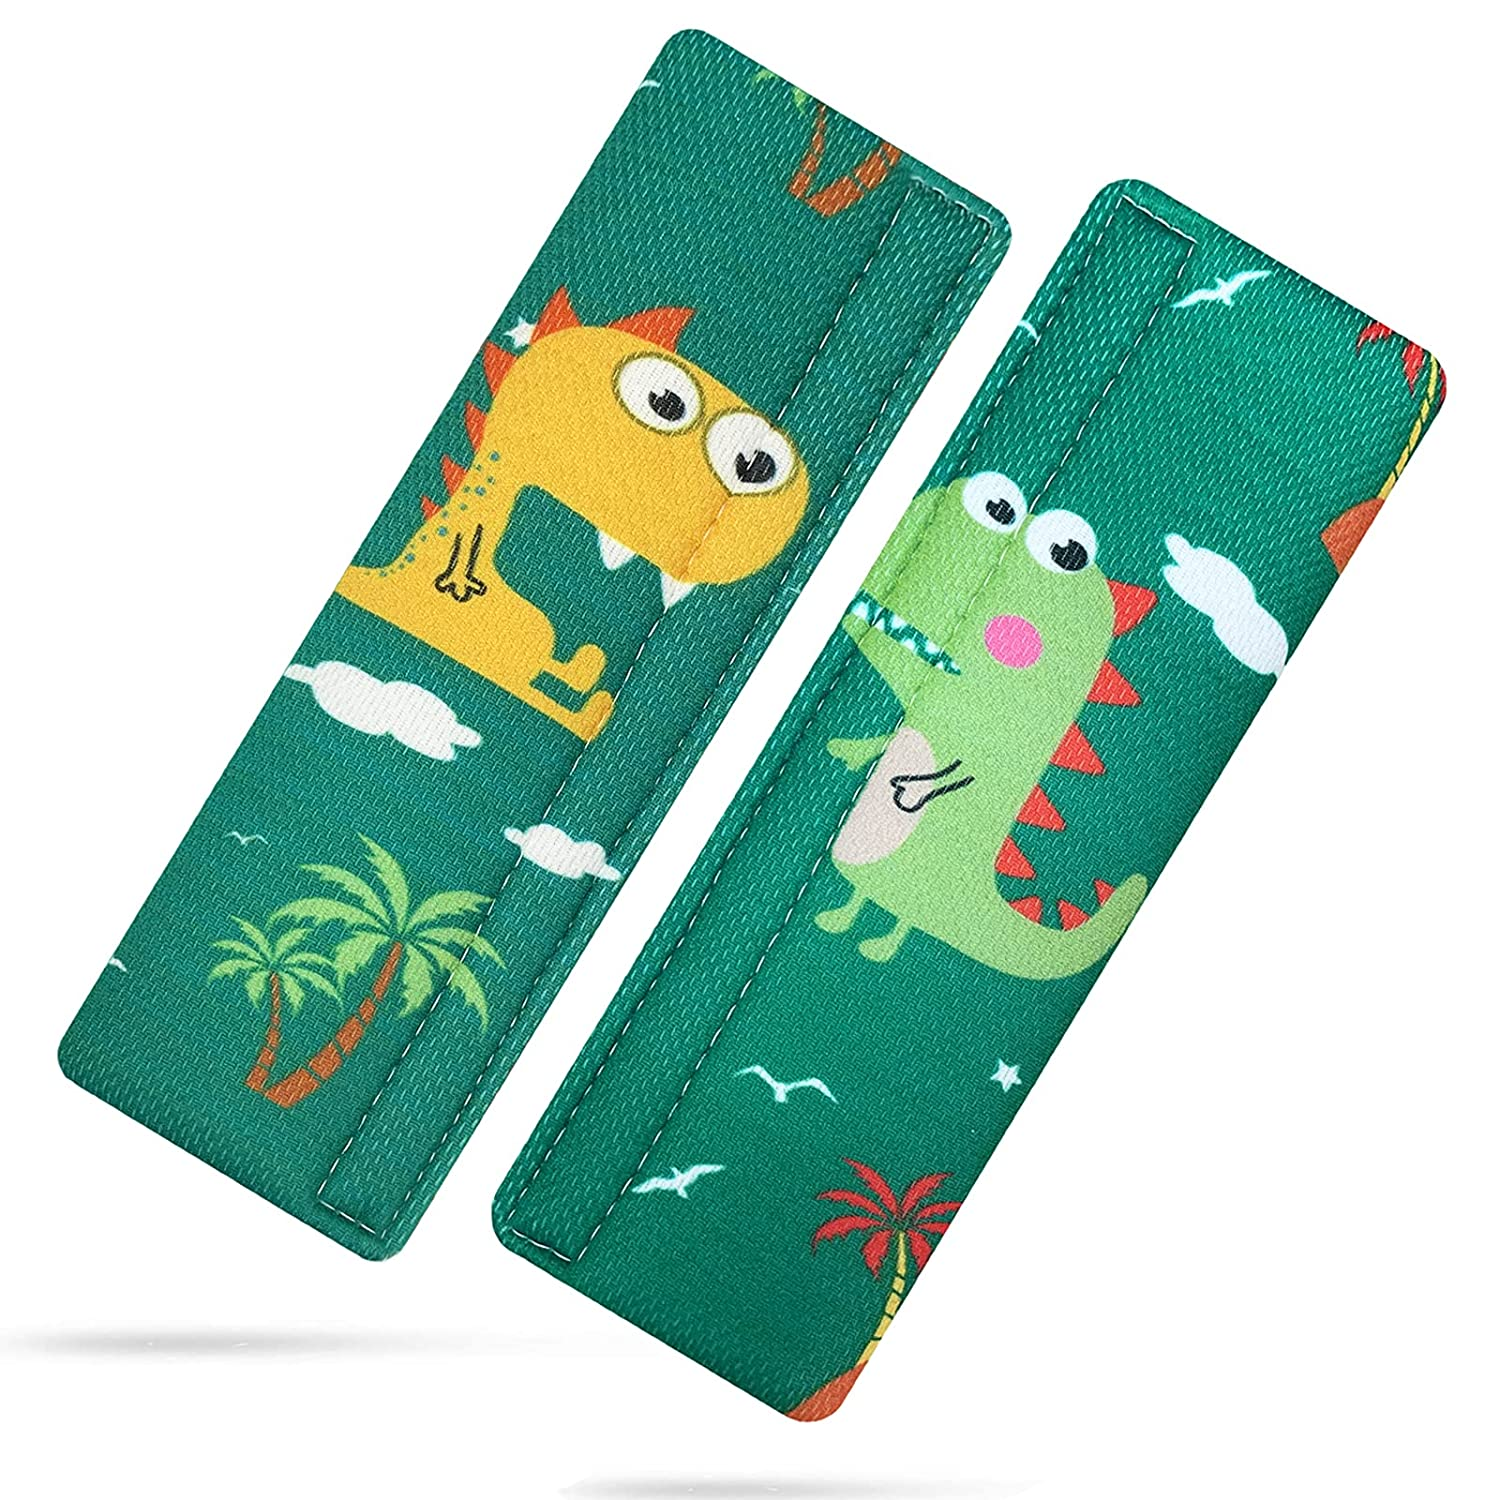 Seatbelt Covers Baby Car Strap Covers - Soft and Comfort Car Seat Belt Covers for Kids Cute Dinosaur Pattern Seat Strap Pads Pillow for Boys and Girls, 2 Pack